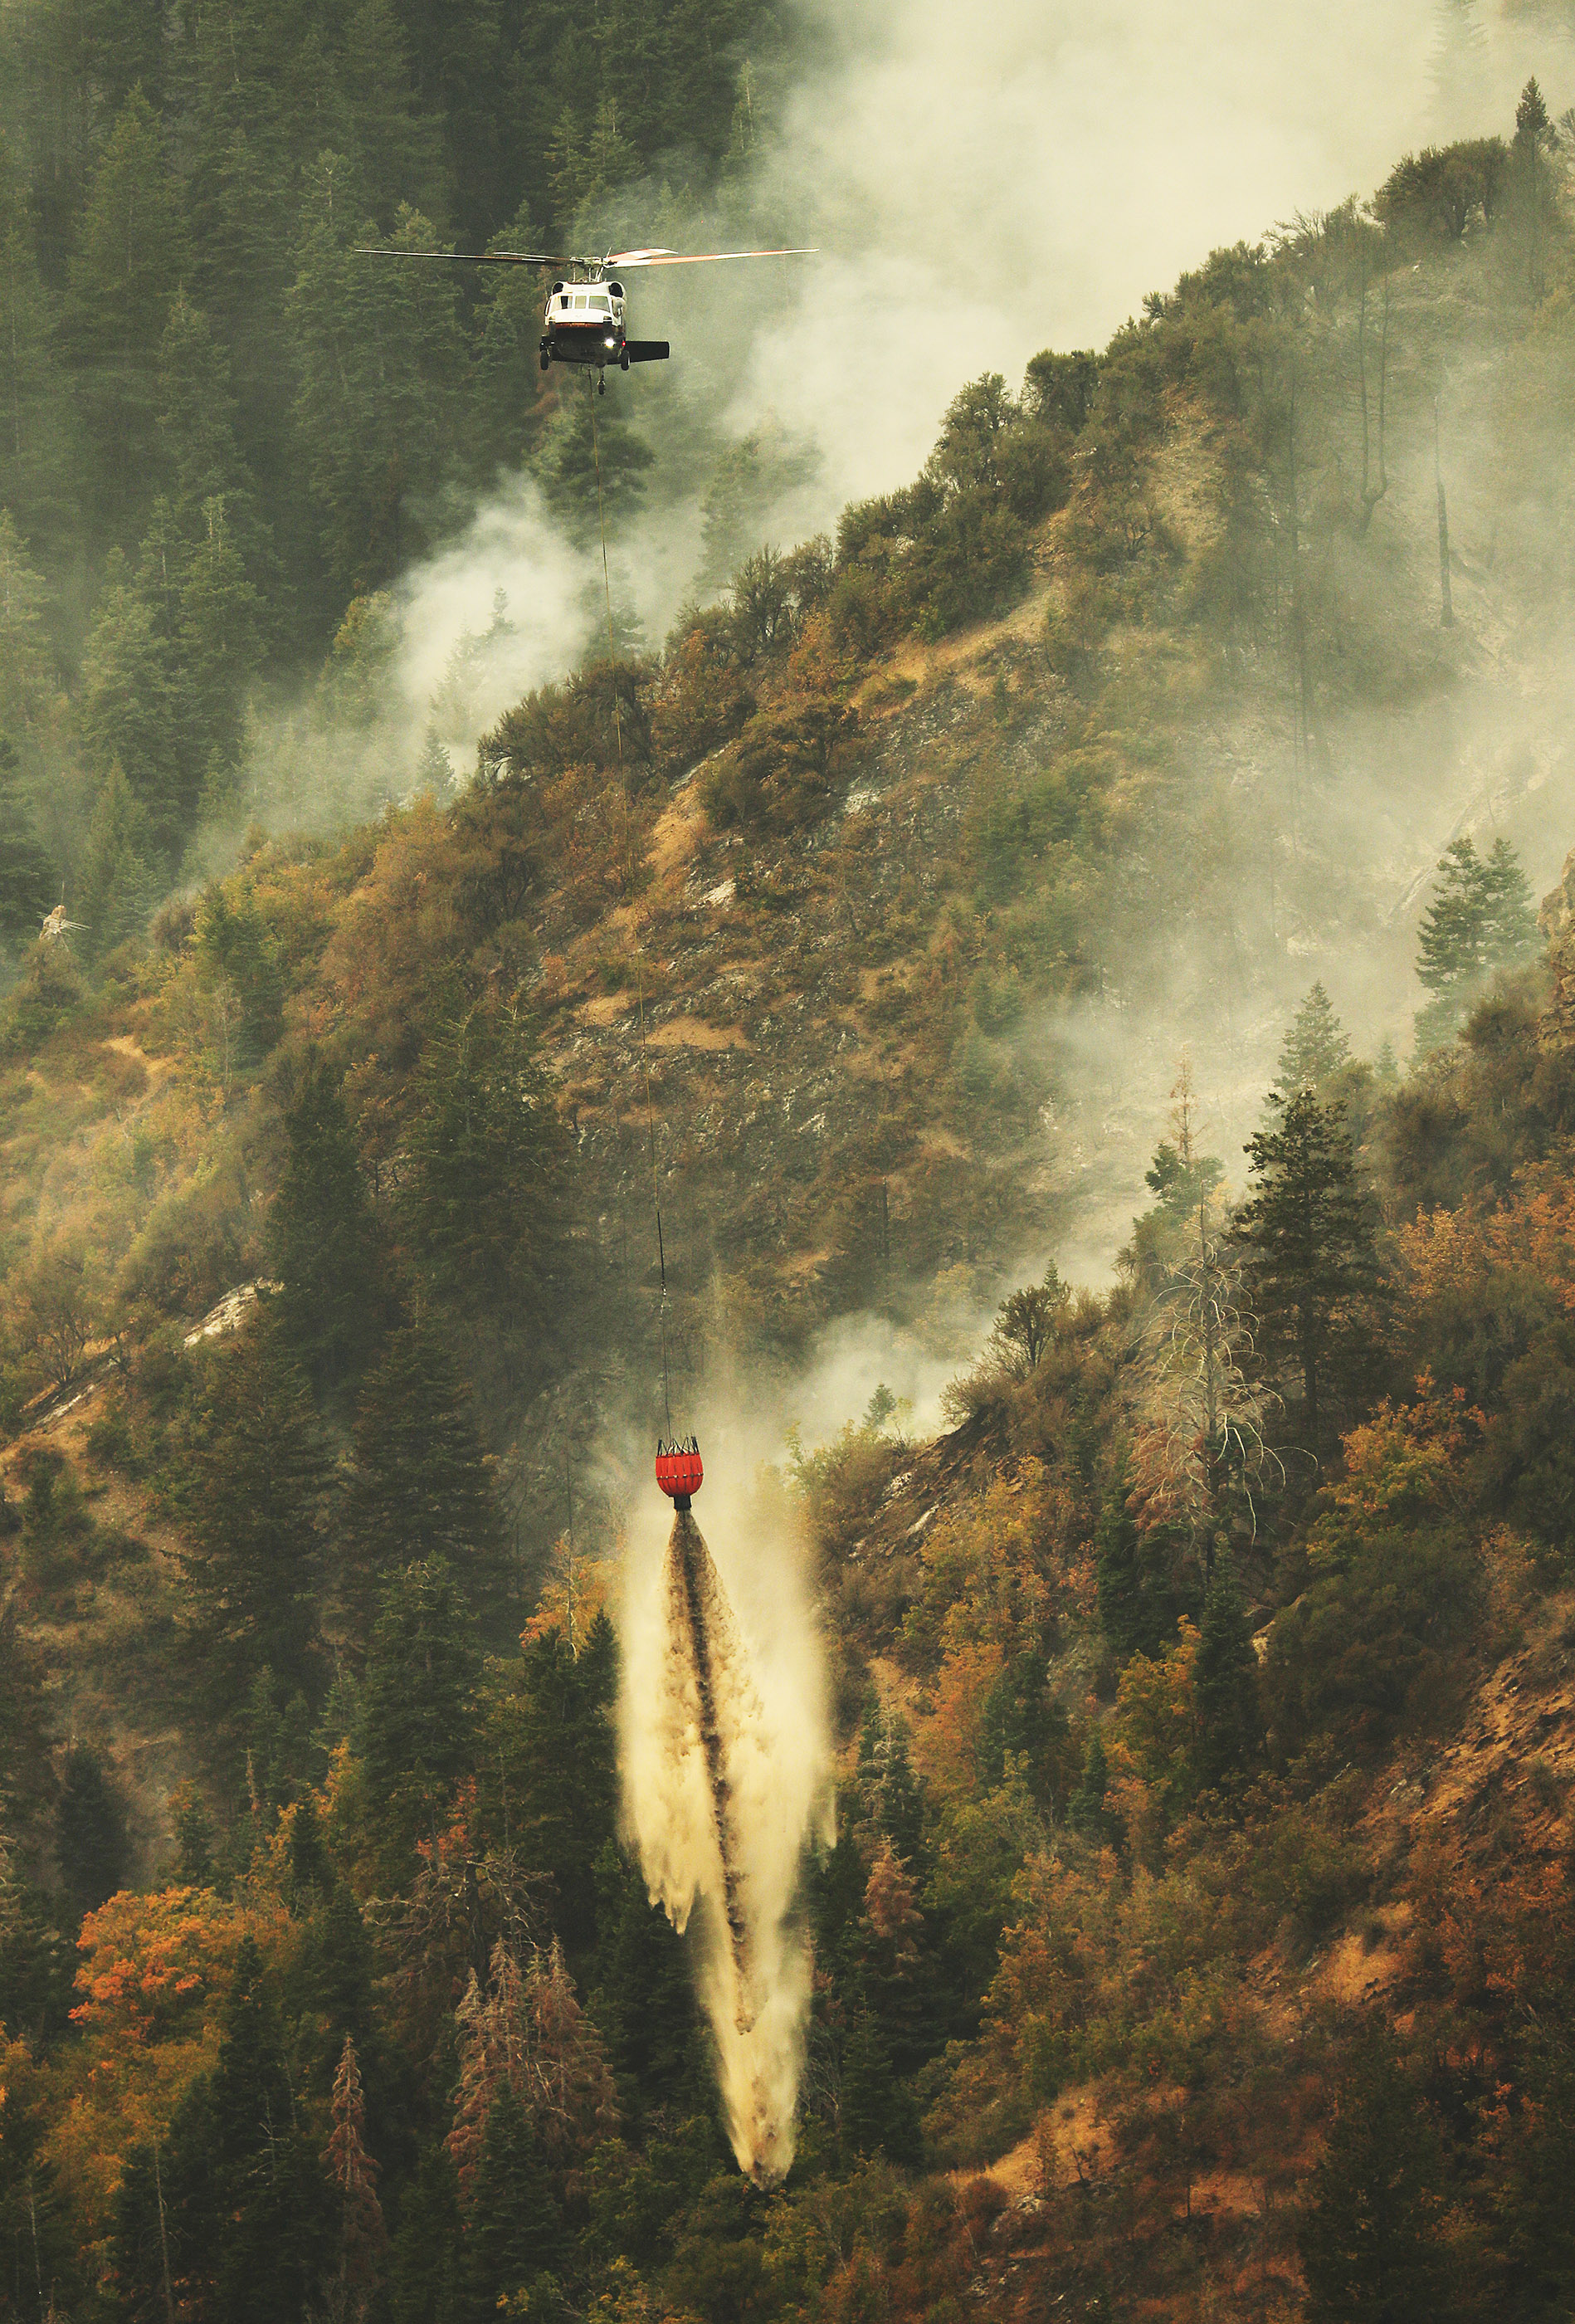 How drones affect aerial firefighting process - The Daily